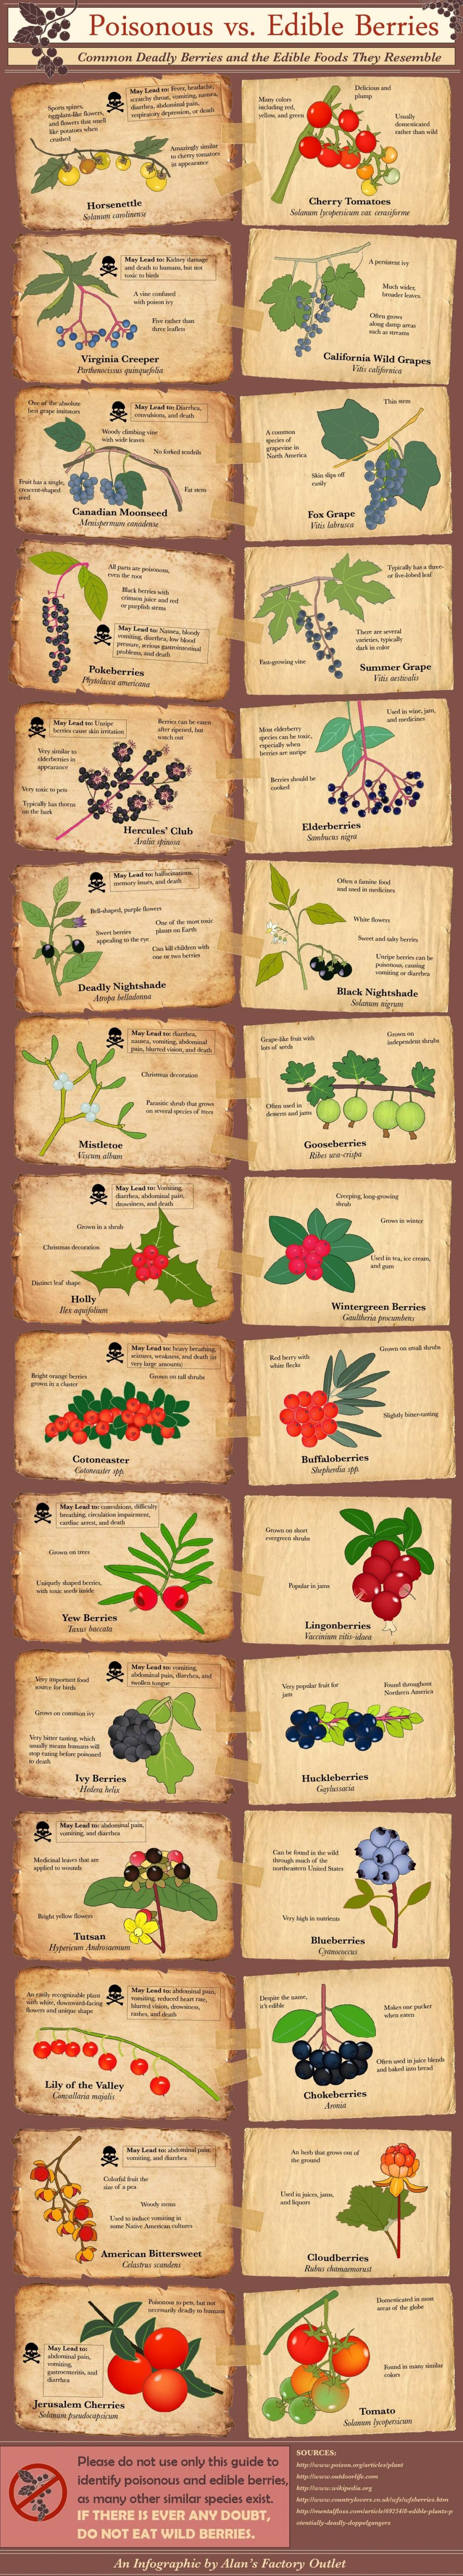 Infographic-poisonous-berries-food-fruit-vegetable-garden-forage-1